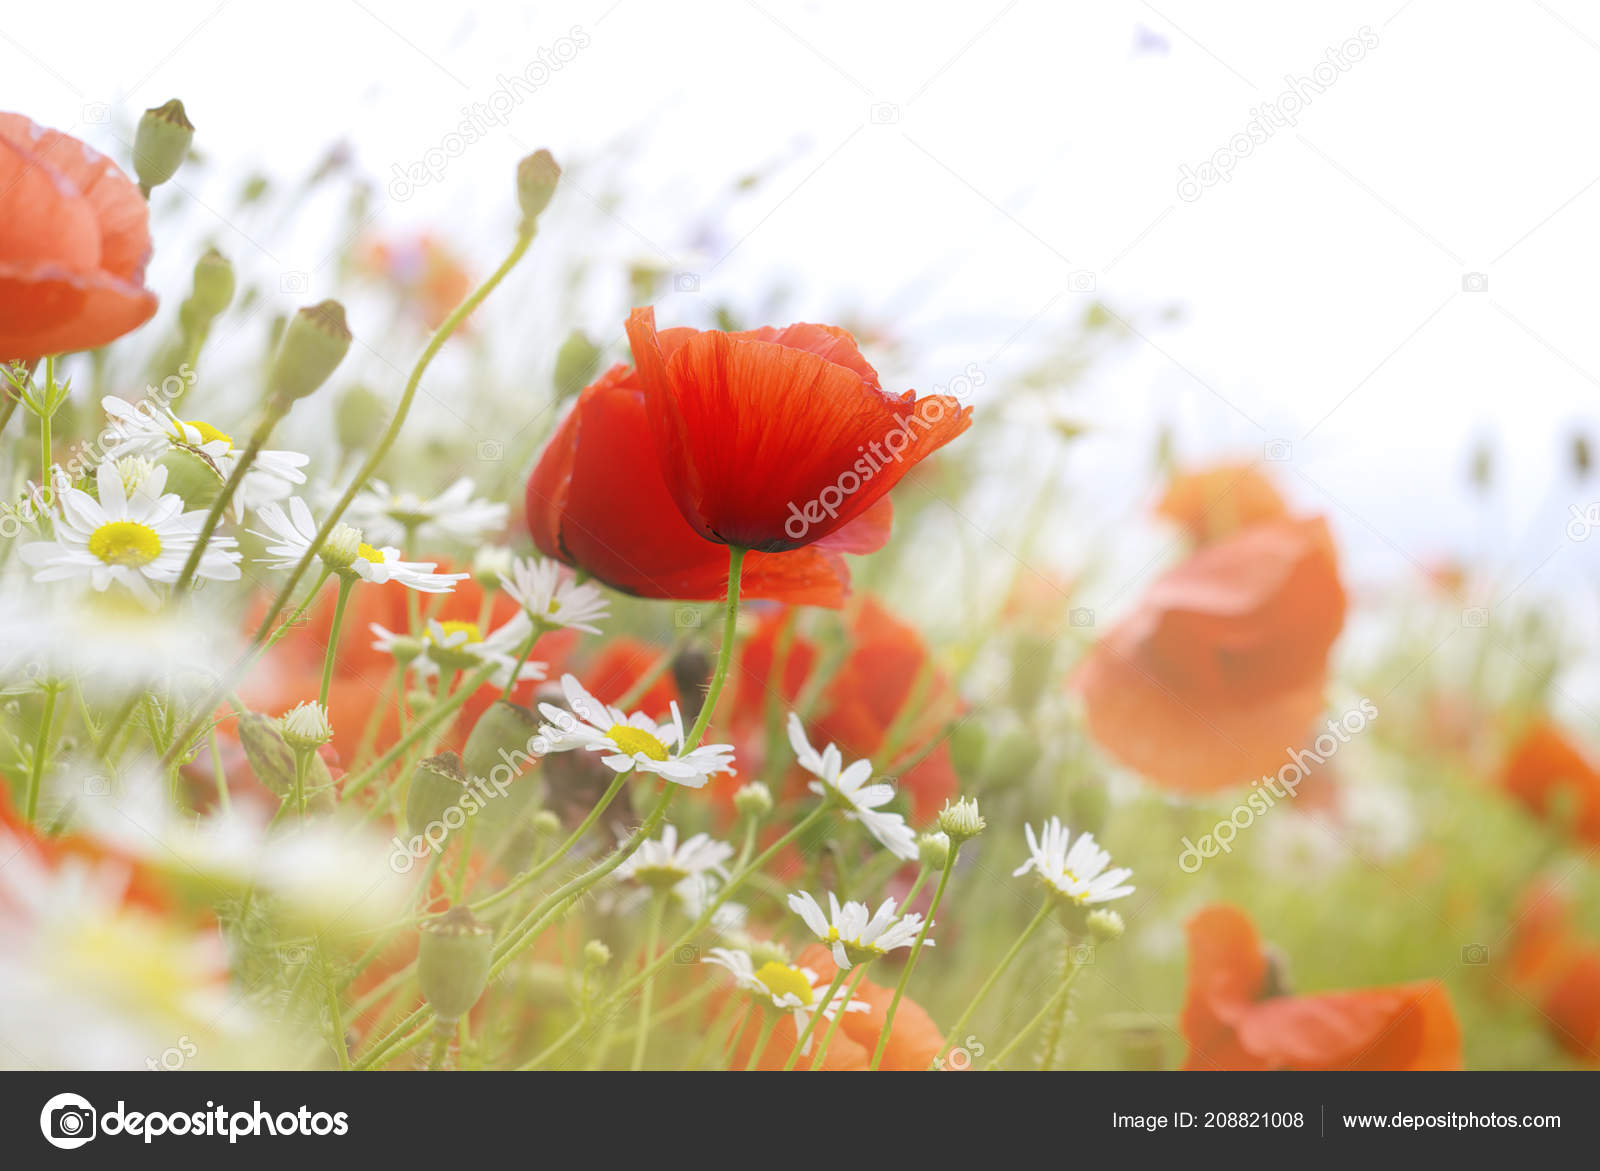 Red Photography Stunning Flower Poppy Picturesque Picturesboss